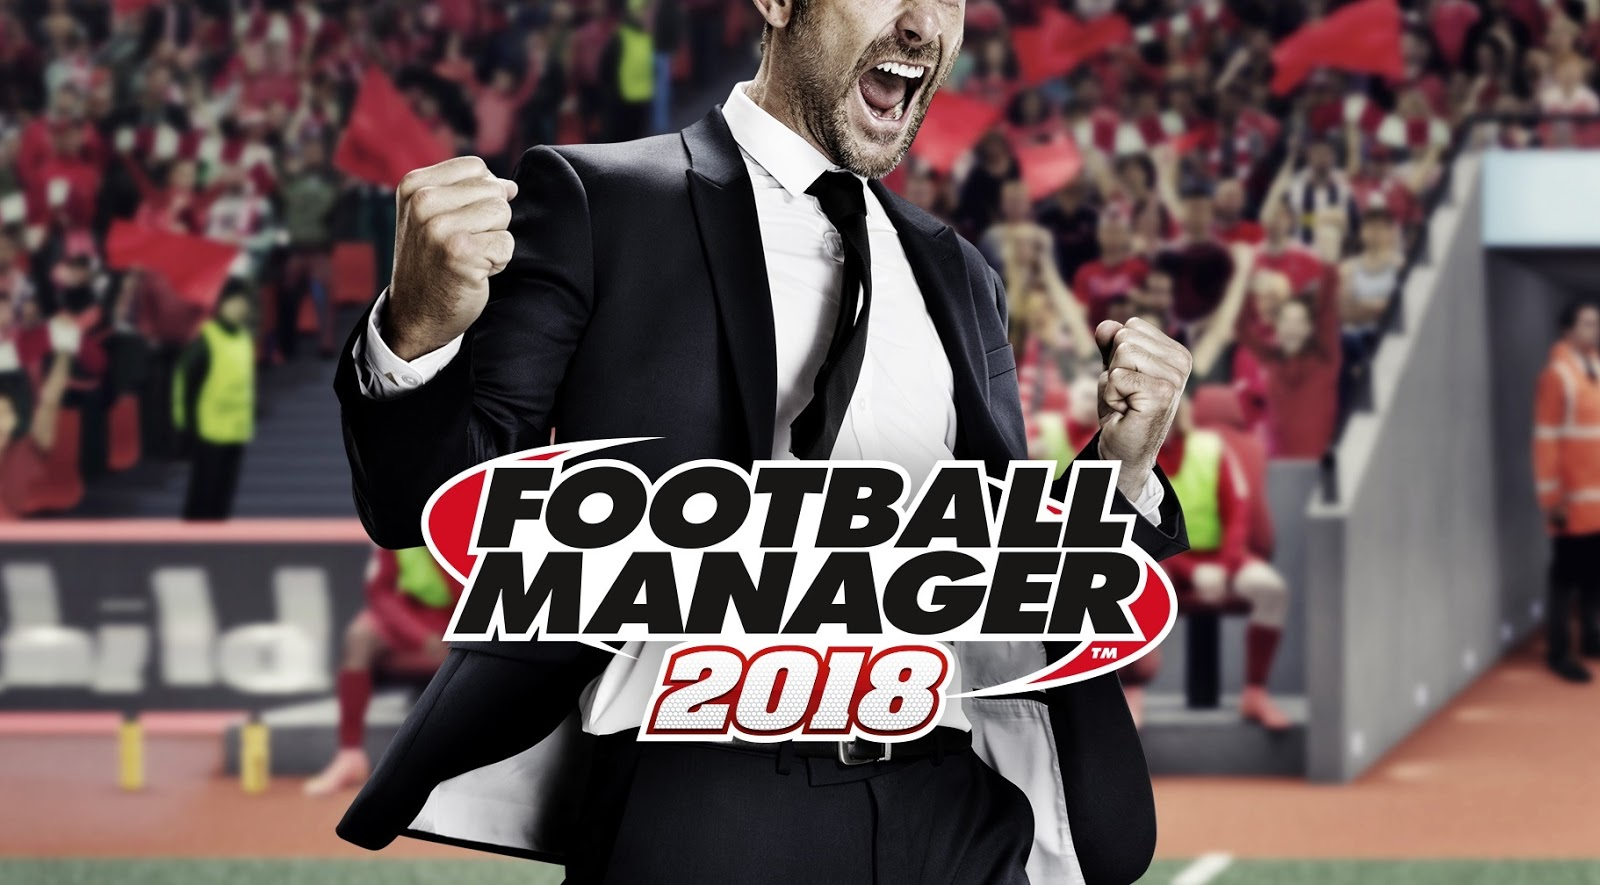 Download championship manager 2018 apkpure